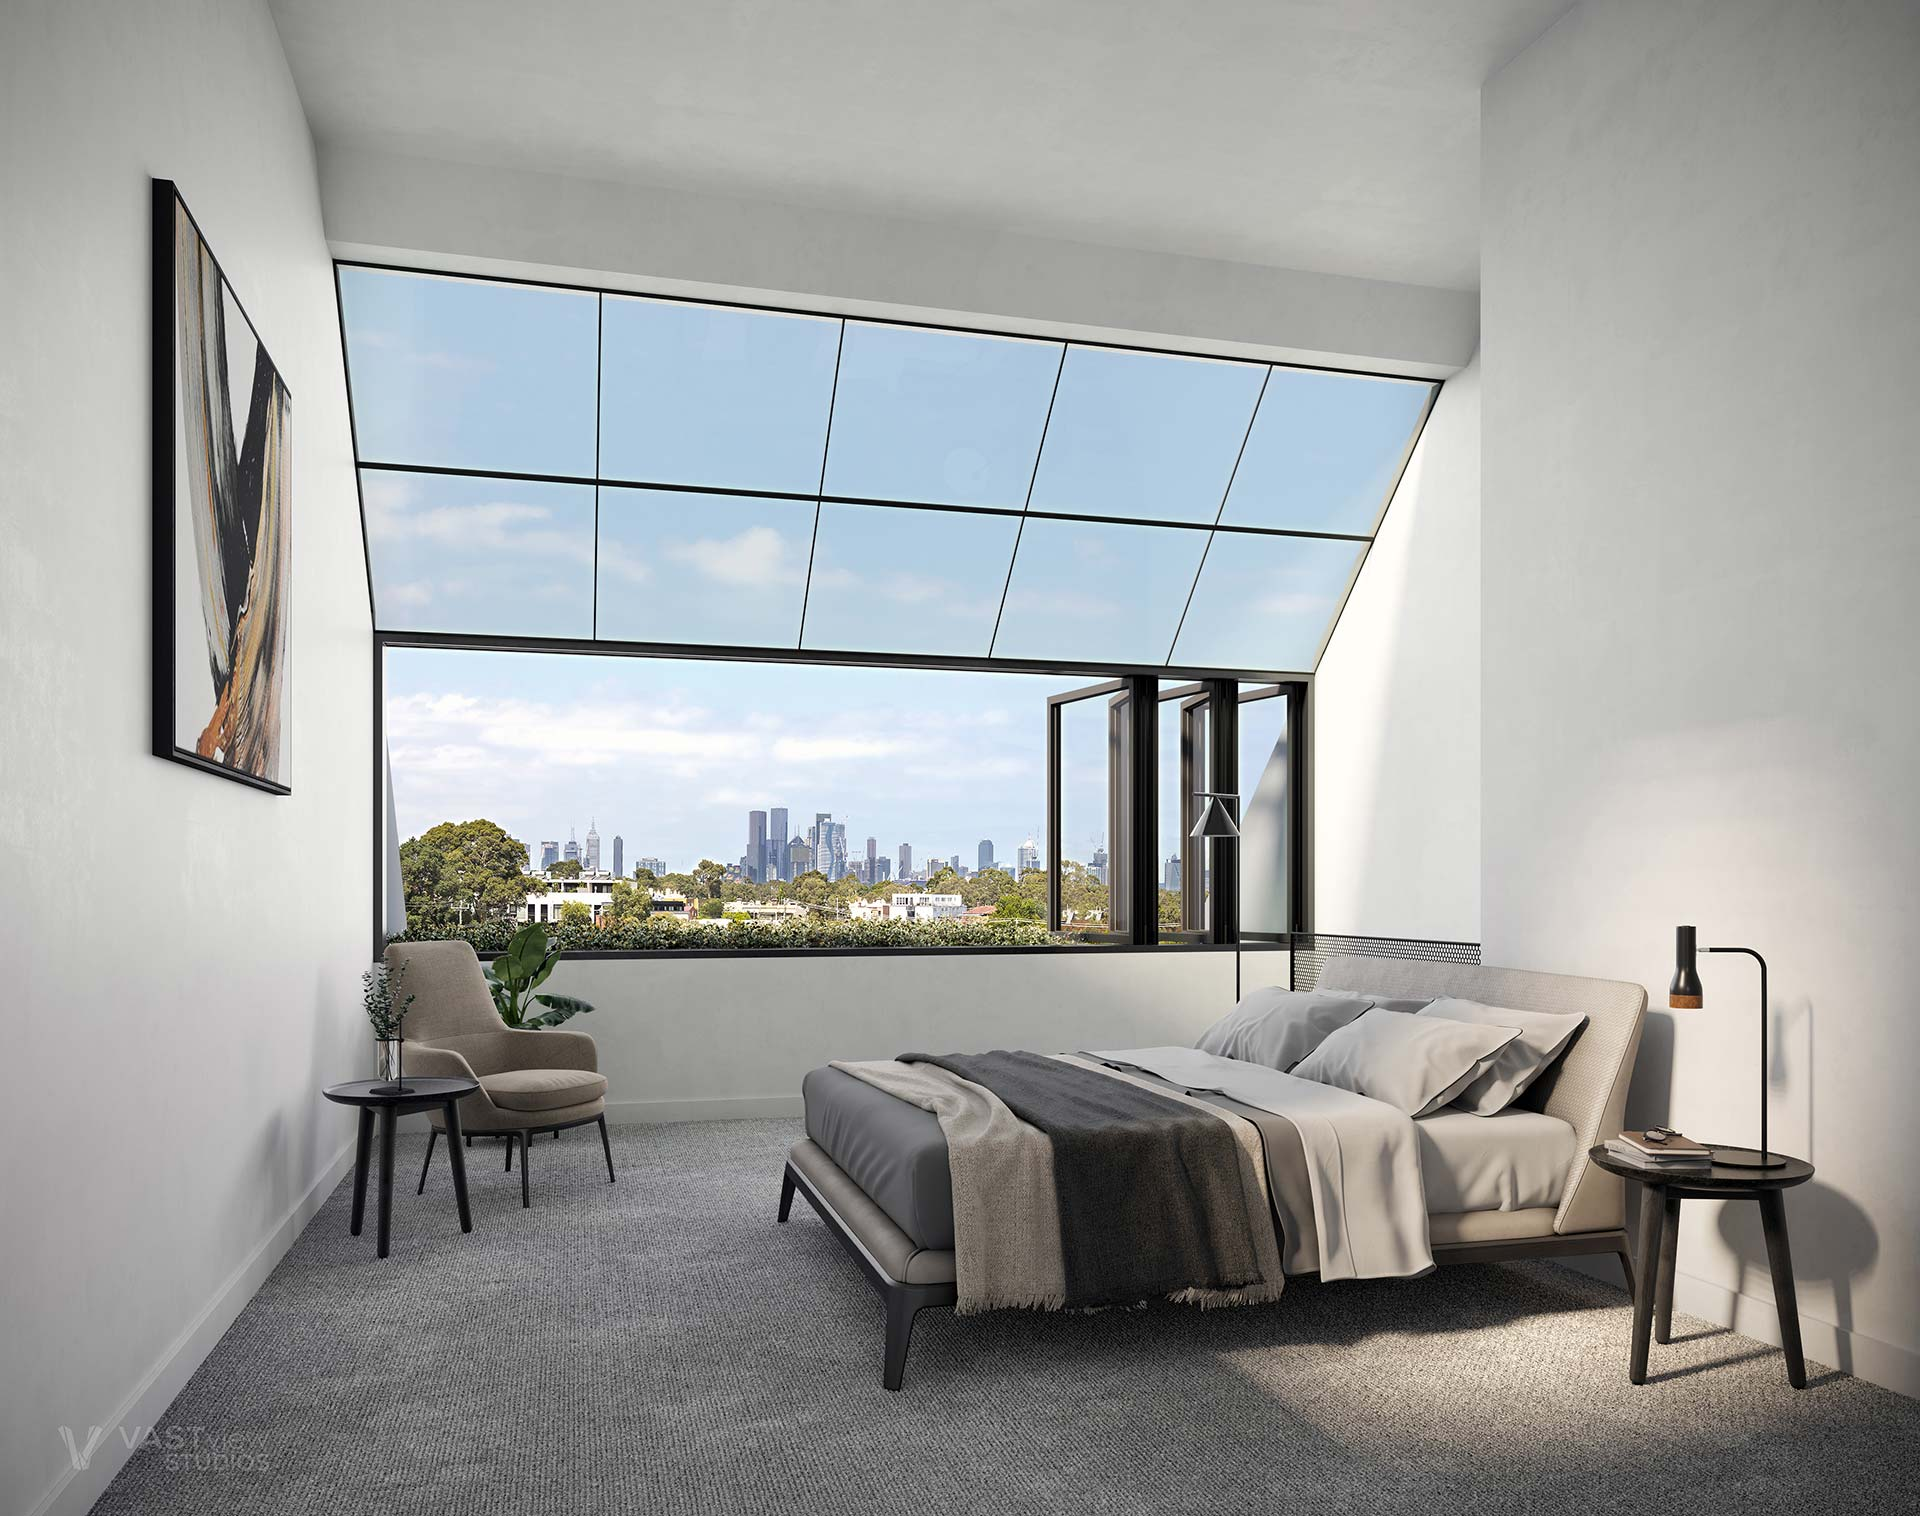 HennessySt_BedroomWithCityViews_FinalRender_v1.0